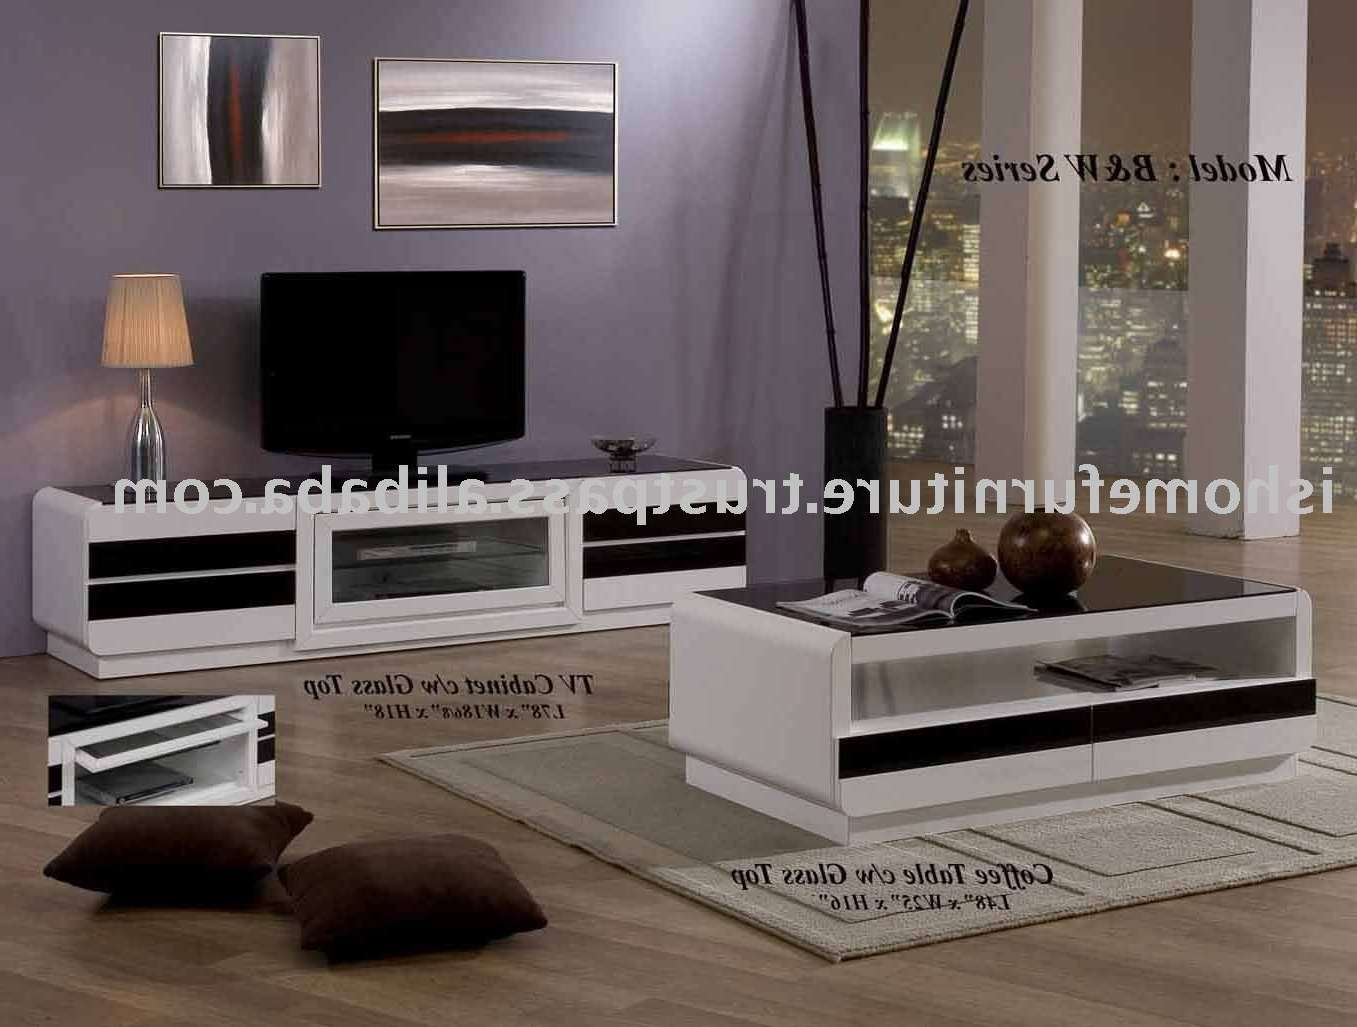 Coffee Table : Breathtaking Tv Stand And Coffee Table Photo With Regard To Tv Stands Coffee Table Sets (View 1 of 20)